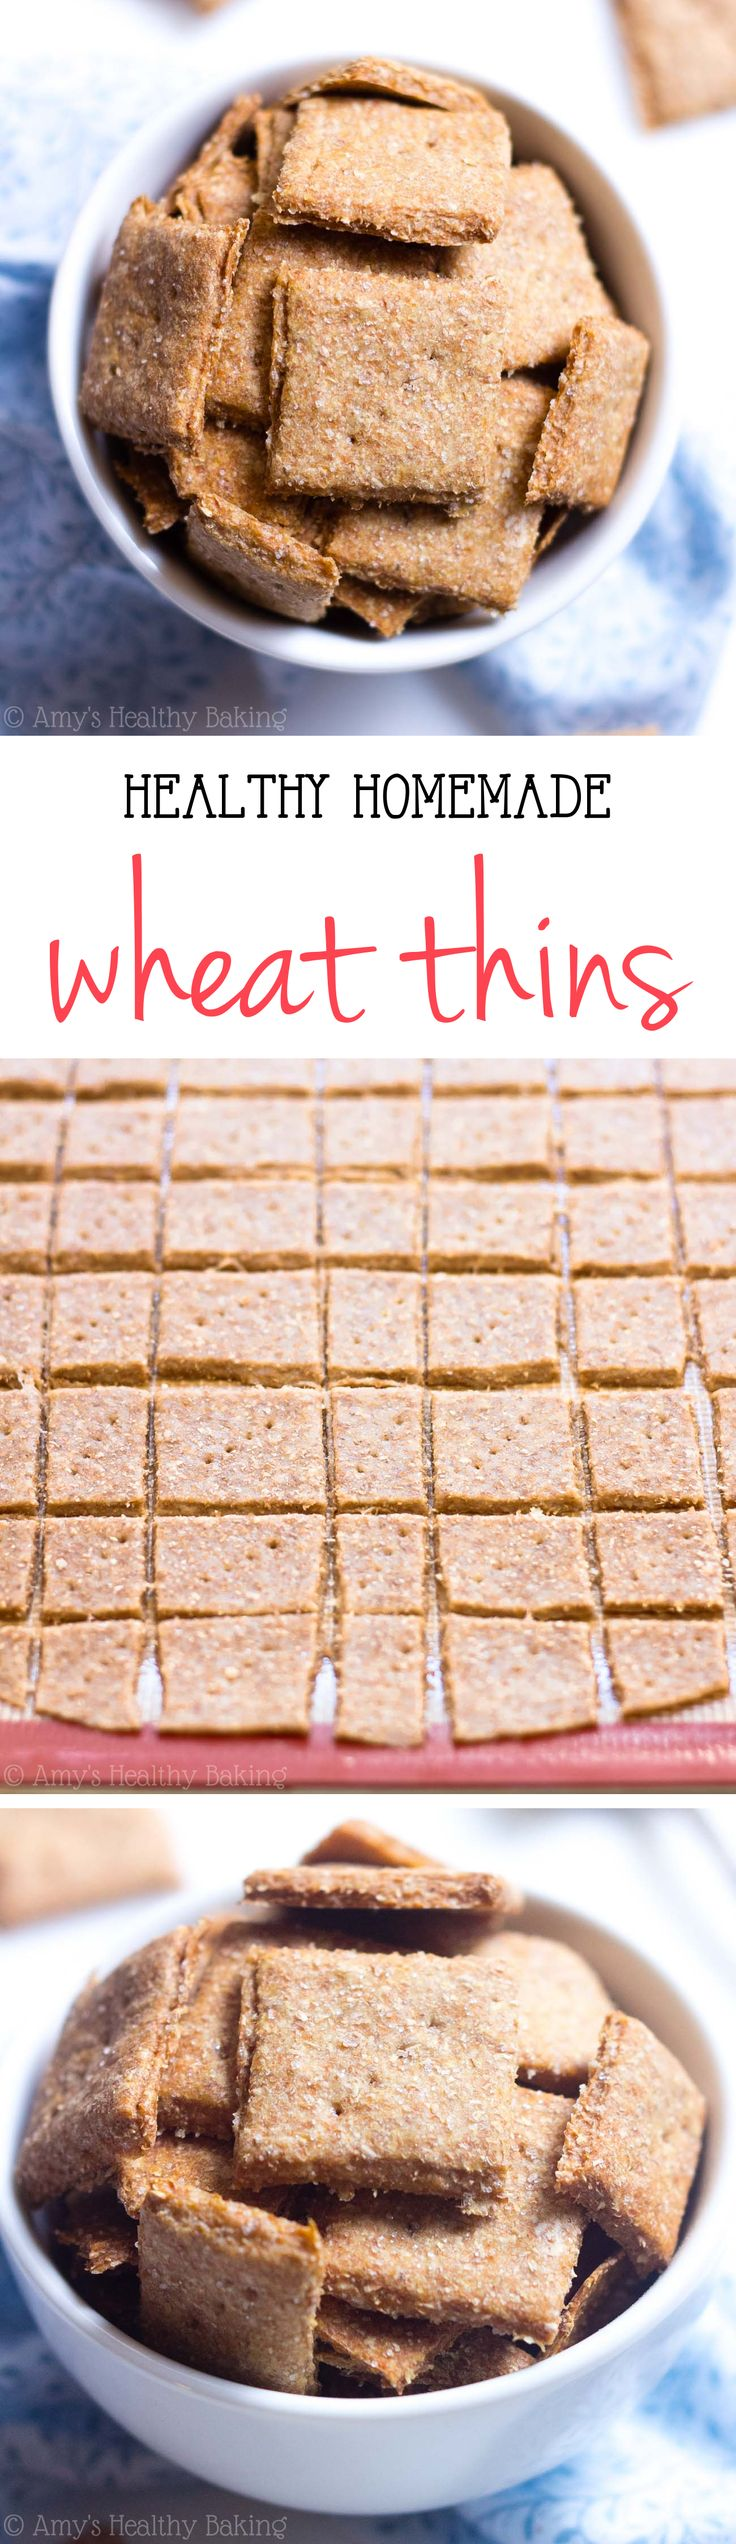 Clean-Eating Homemade Wheat Thins -- just 5 ingredients to make these crunchy crackers! SO much better, healthier & cheaper than store-bought! | healthy homemade crackers | easy homemade crackers | whole wheat homemade crackers